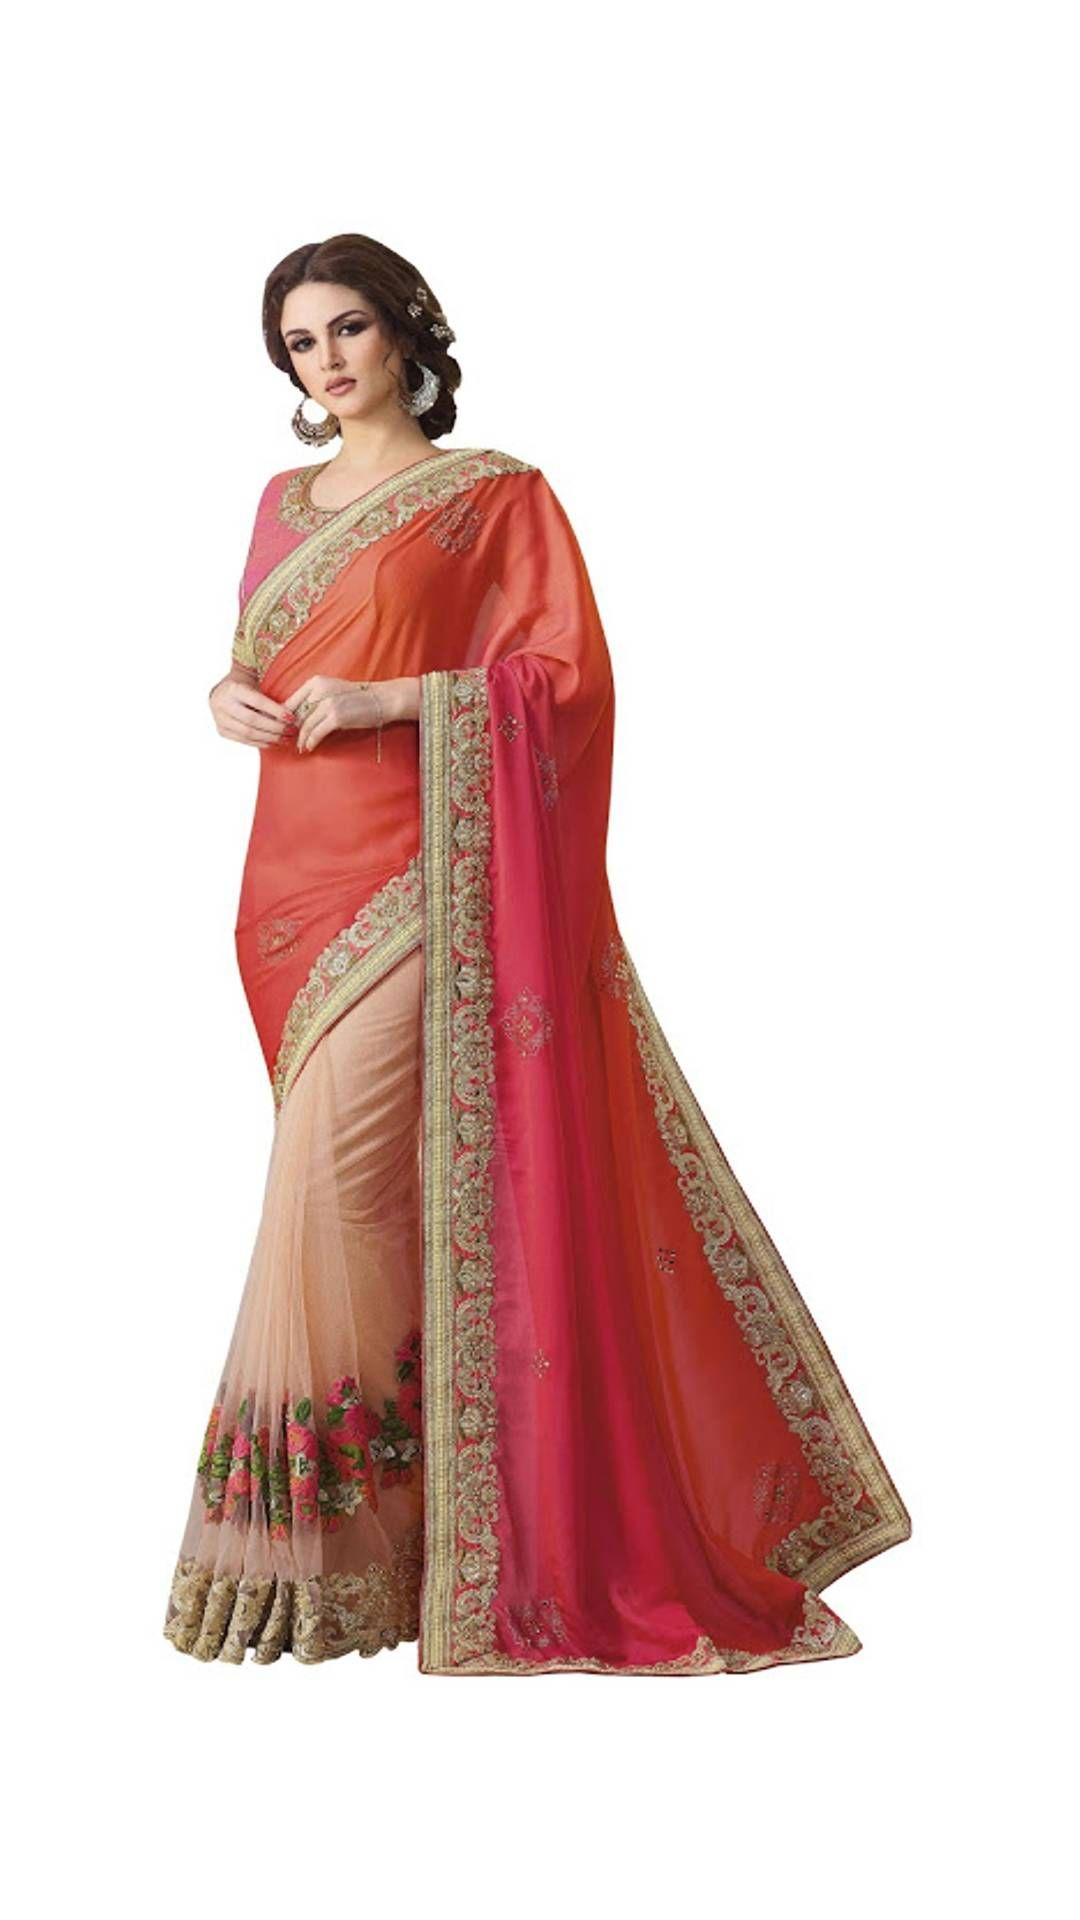 c58ae829b Paytm.com - Buy Buy Silk Georgette With Nylon Net Shaded Orange Designer  Saree online at best prices in India on Paytm.com